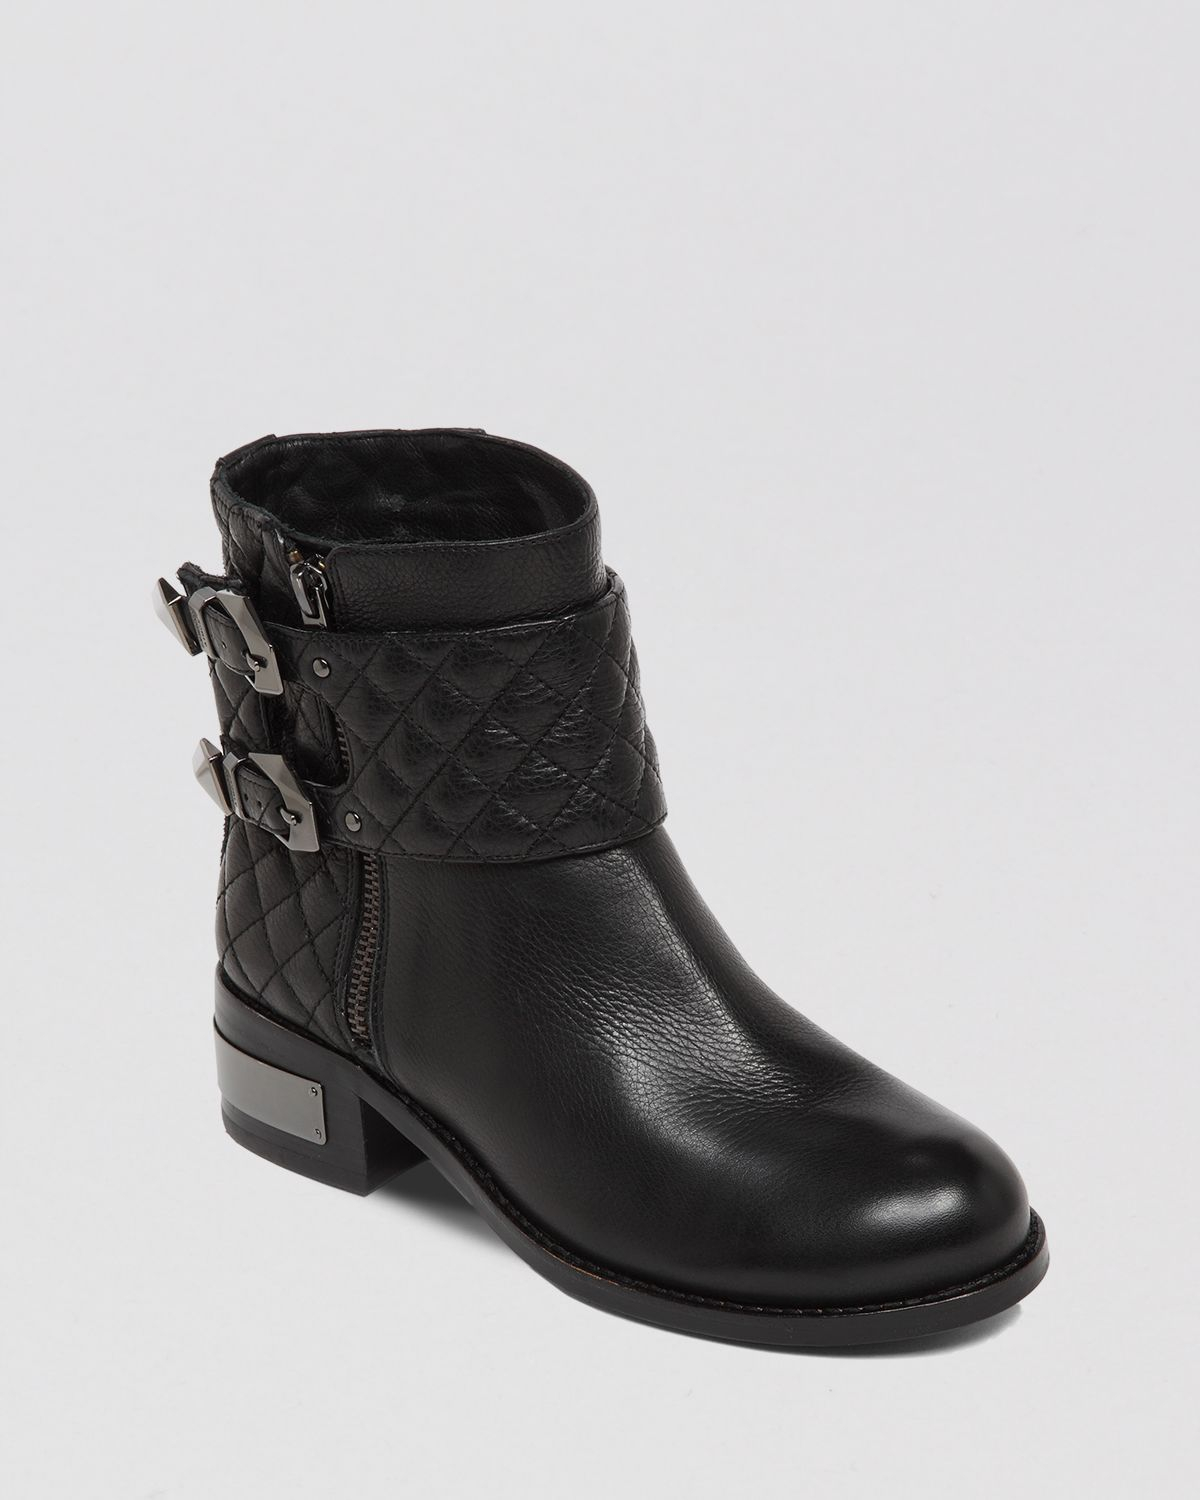 Vince camuto Booties - Winta Quilted Moto in Black   Lyst